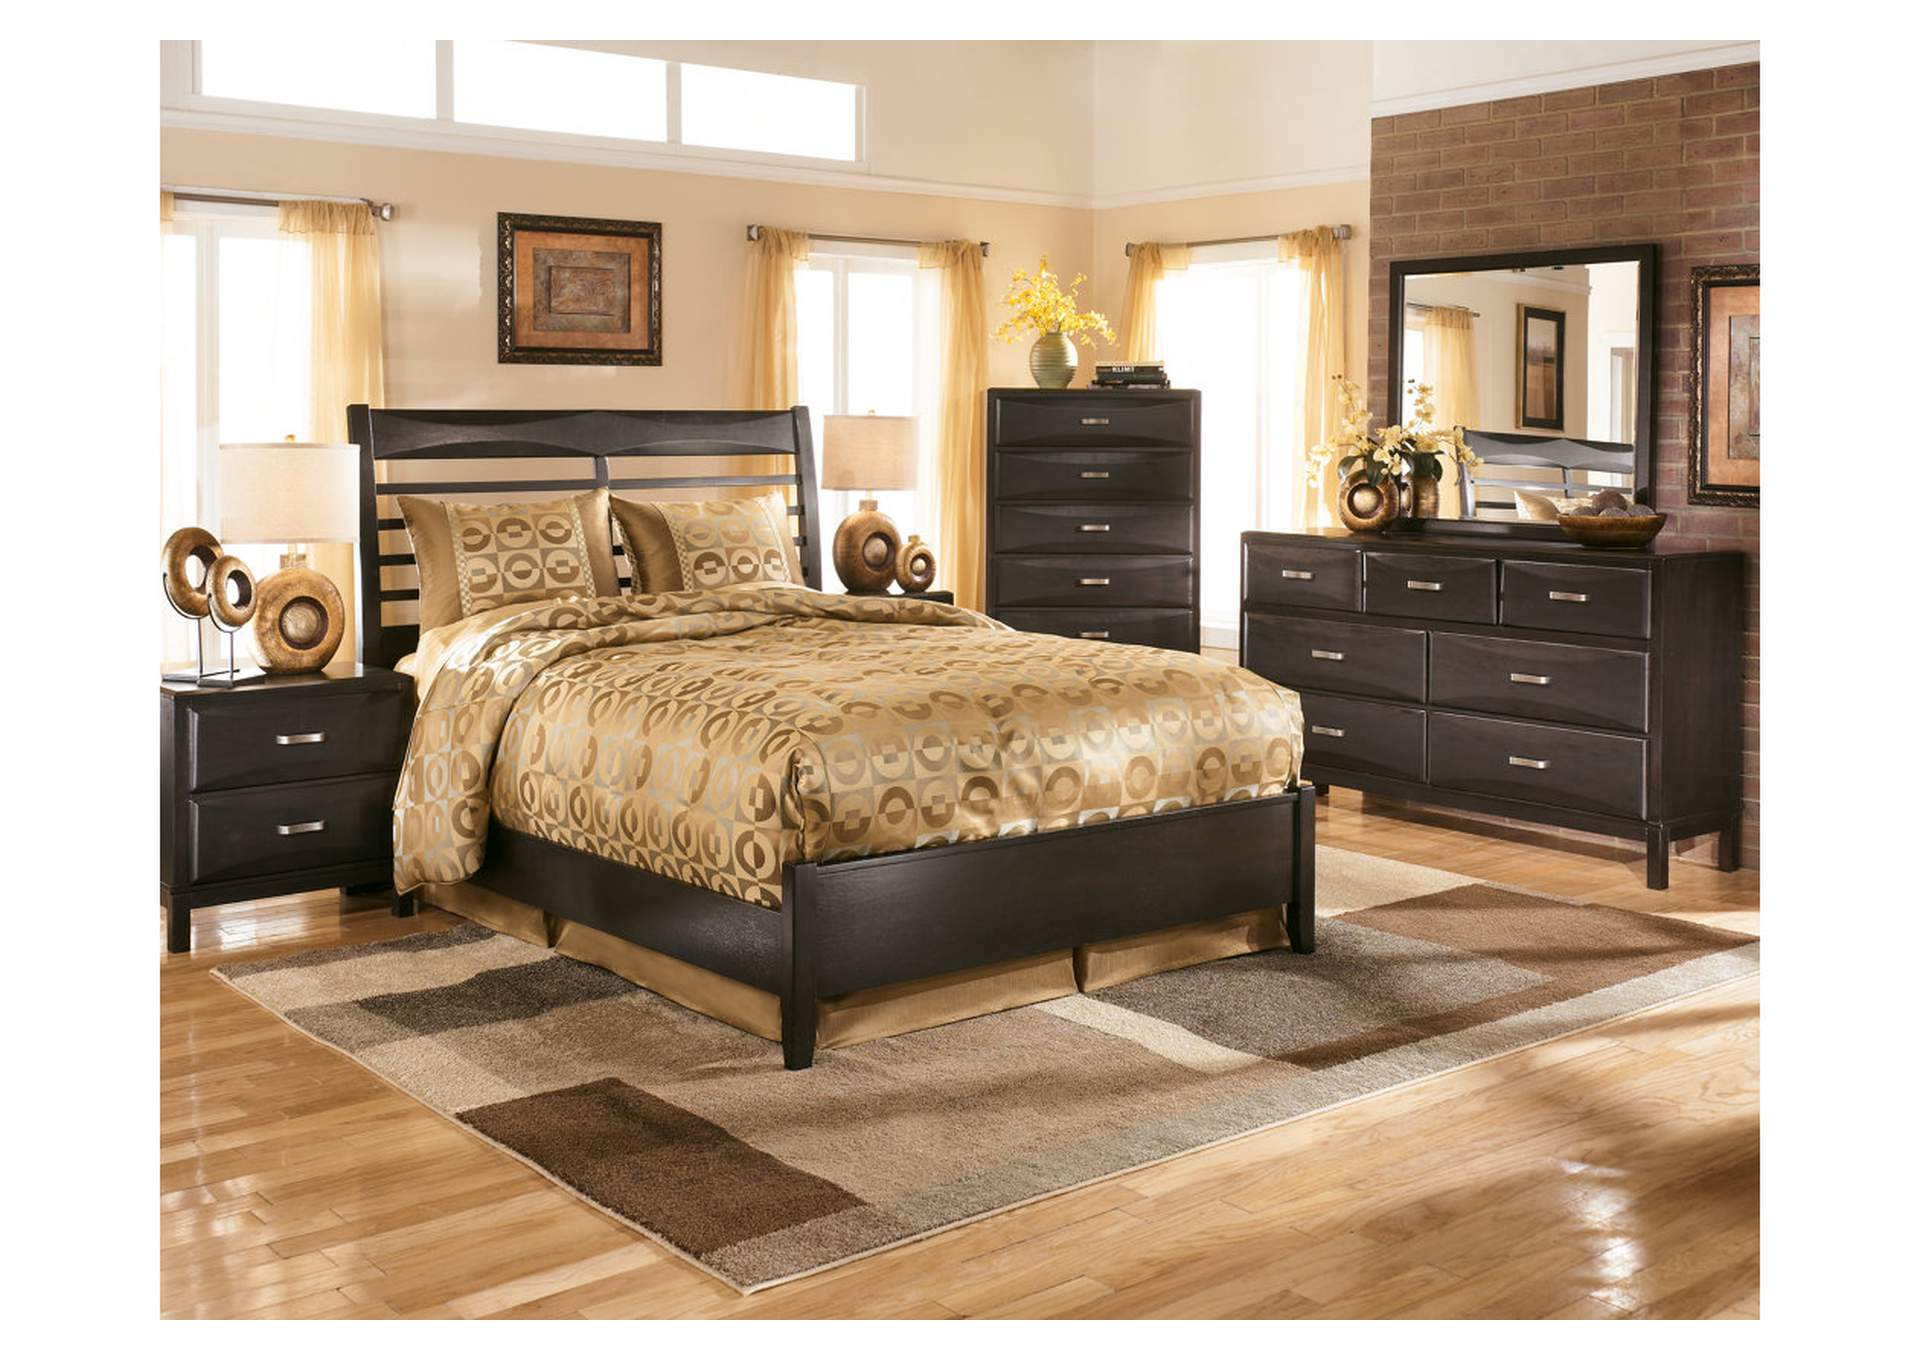 Kira Black Queen Panel Bed w/Dresser, Mirror & Drawer Chest,Ashley